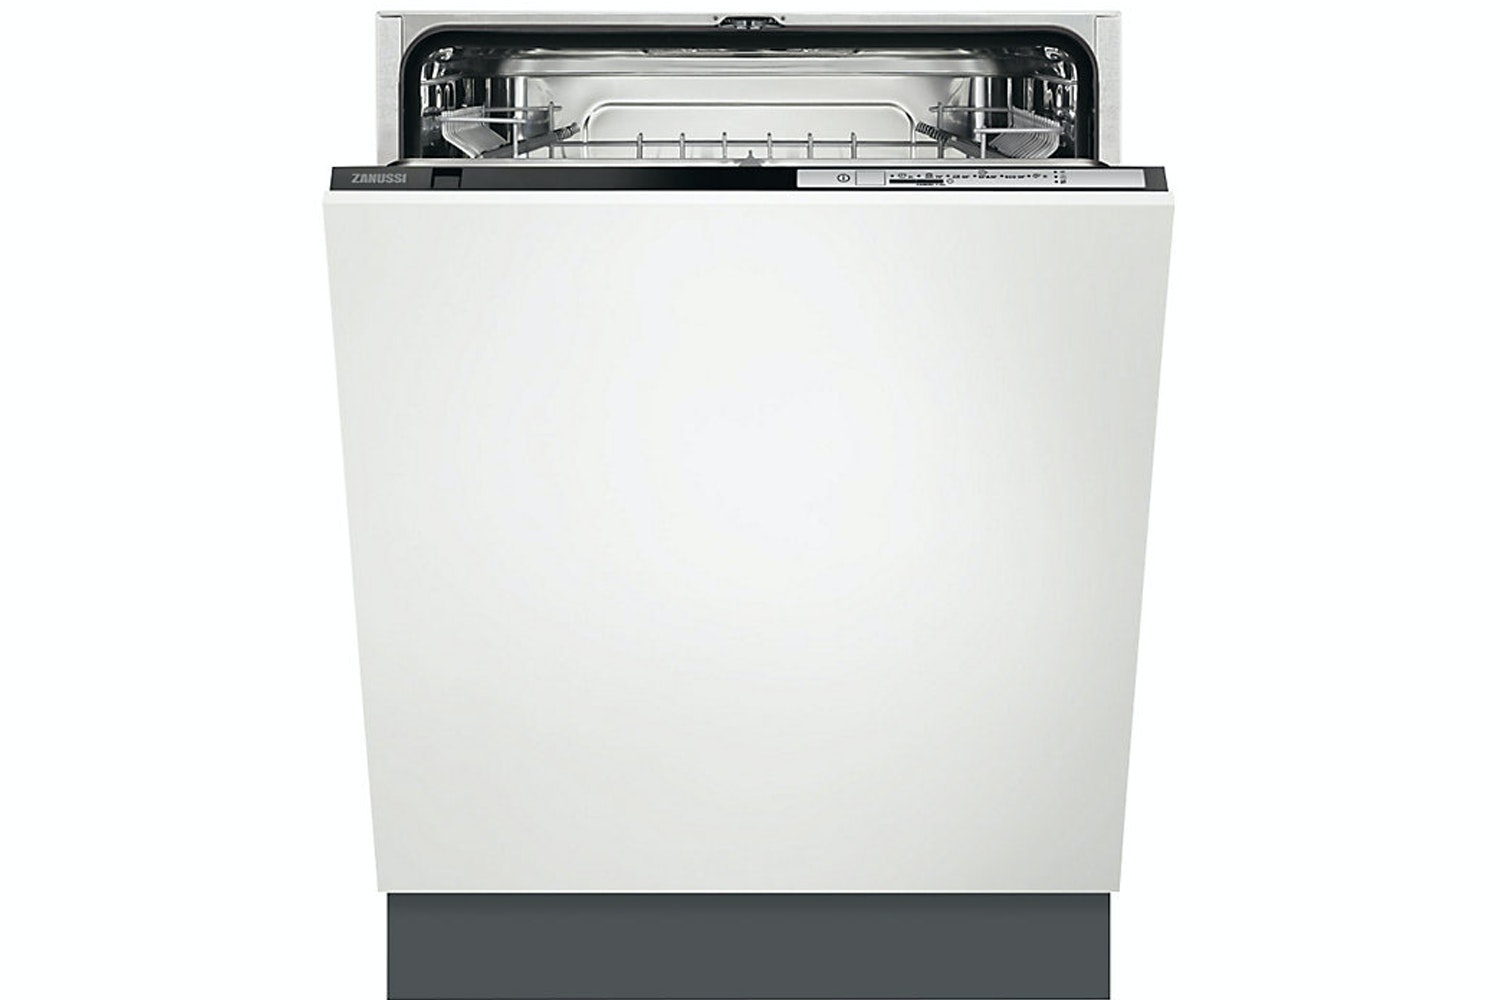 Zanussi 13 Place Fully Integrated Dishwasher | ZDT22003FA